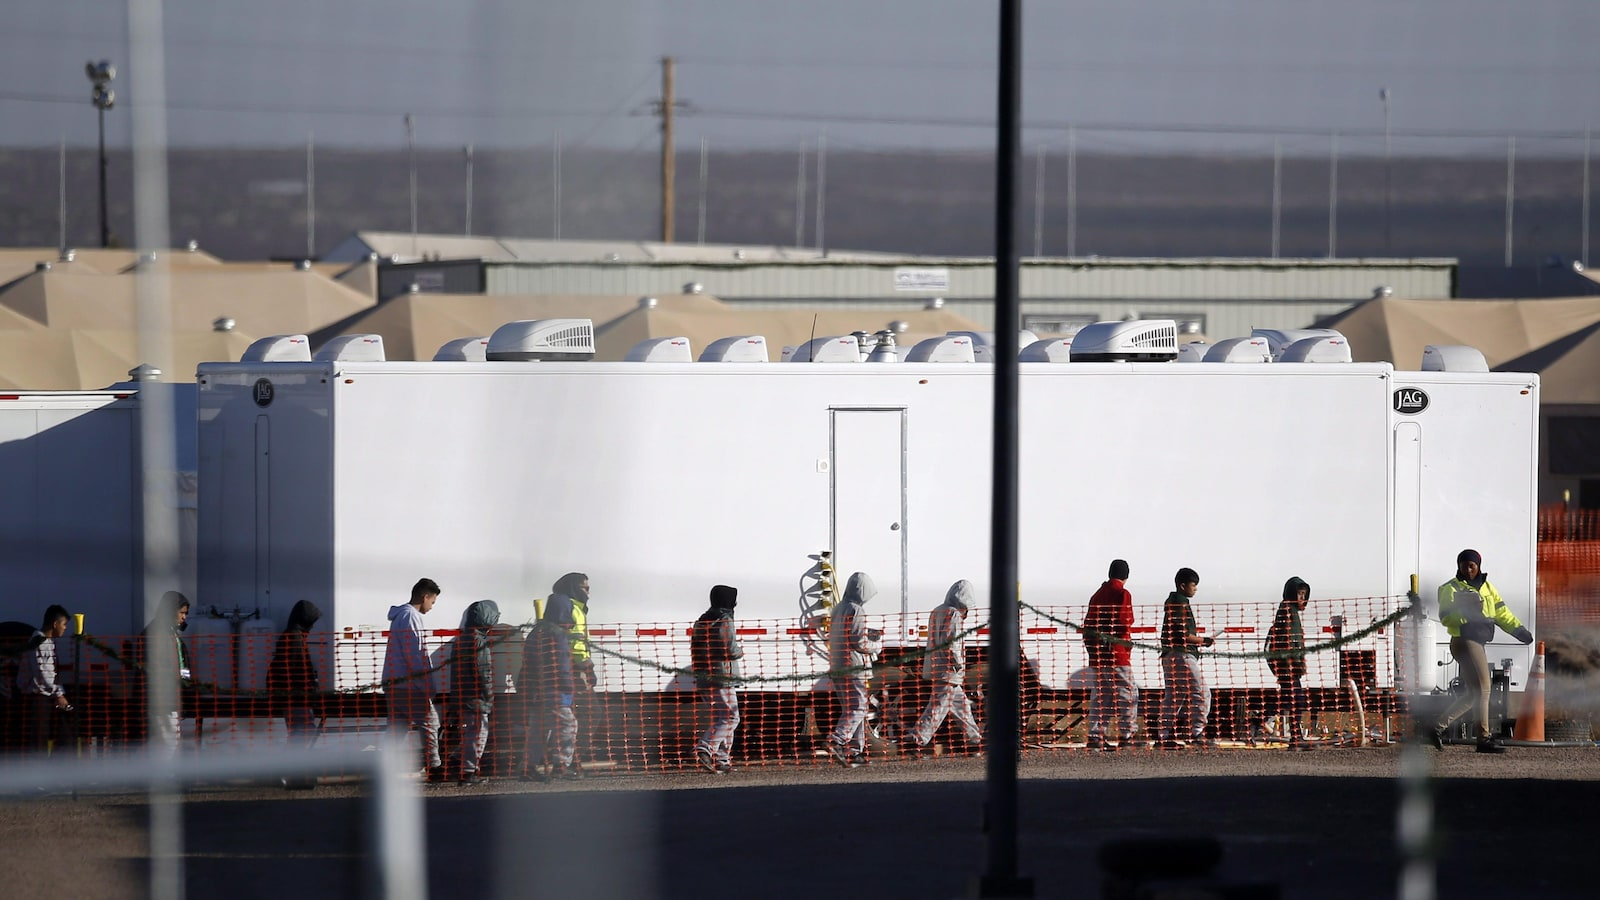 Des adolescents migrants marchent en file dans le camp de Tornillo au Texas.